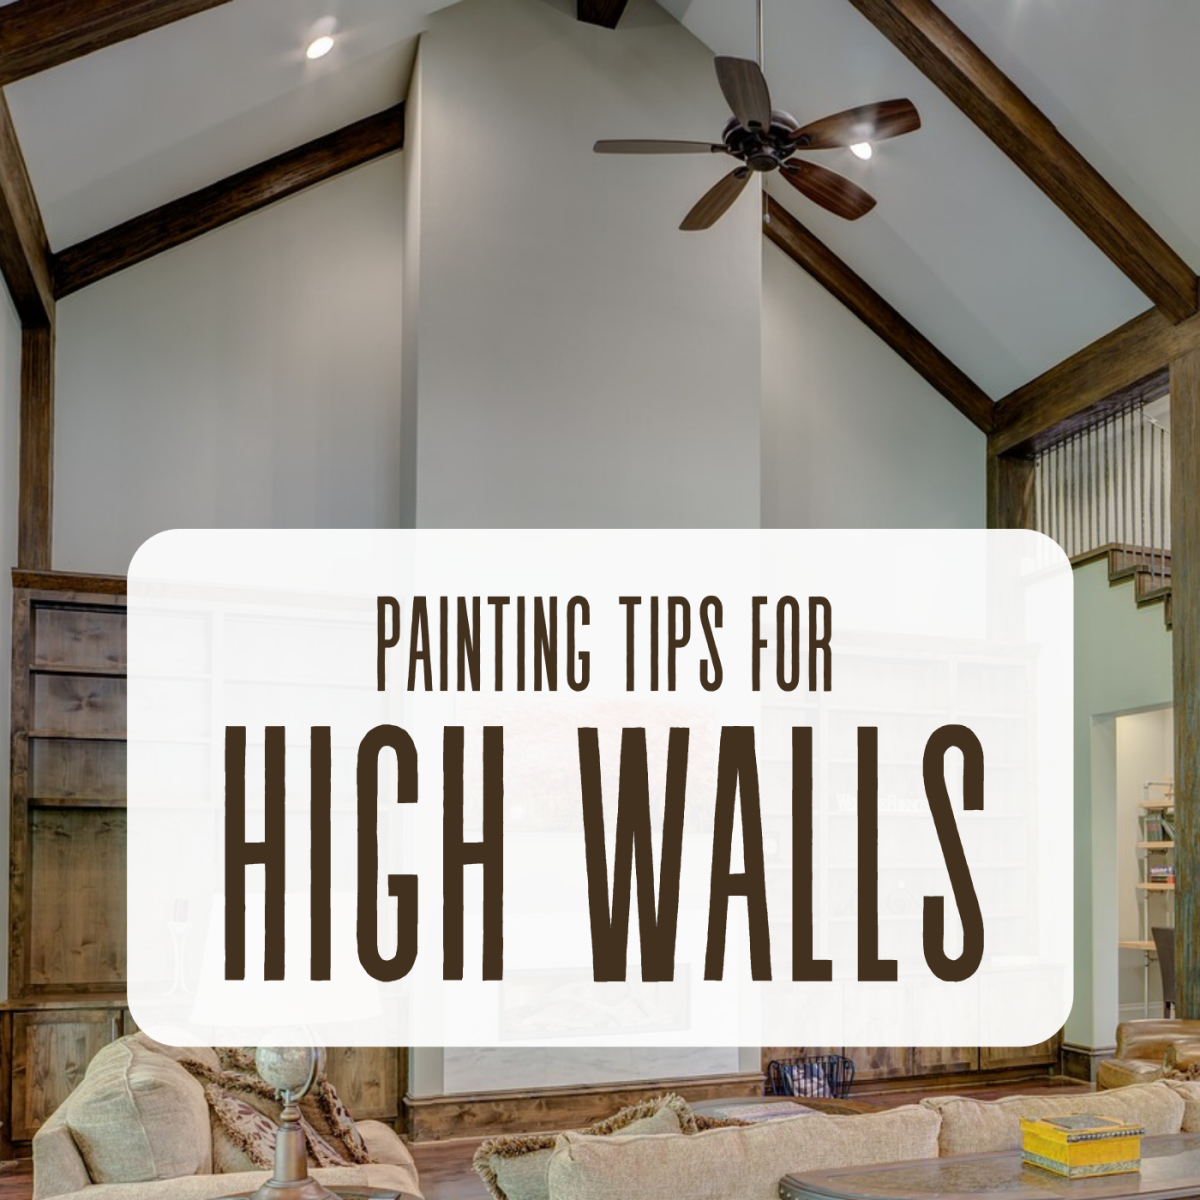 Get advice from a professional painter on how to successfully paint high walls in your home.